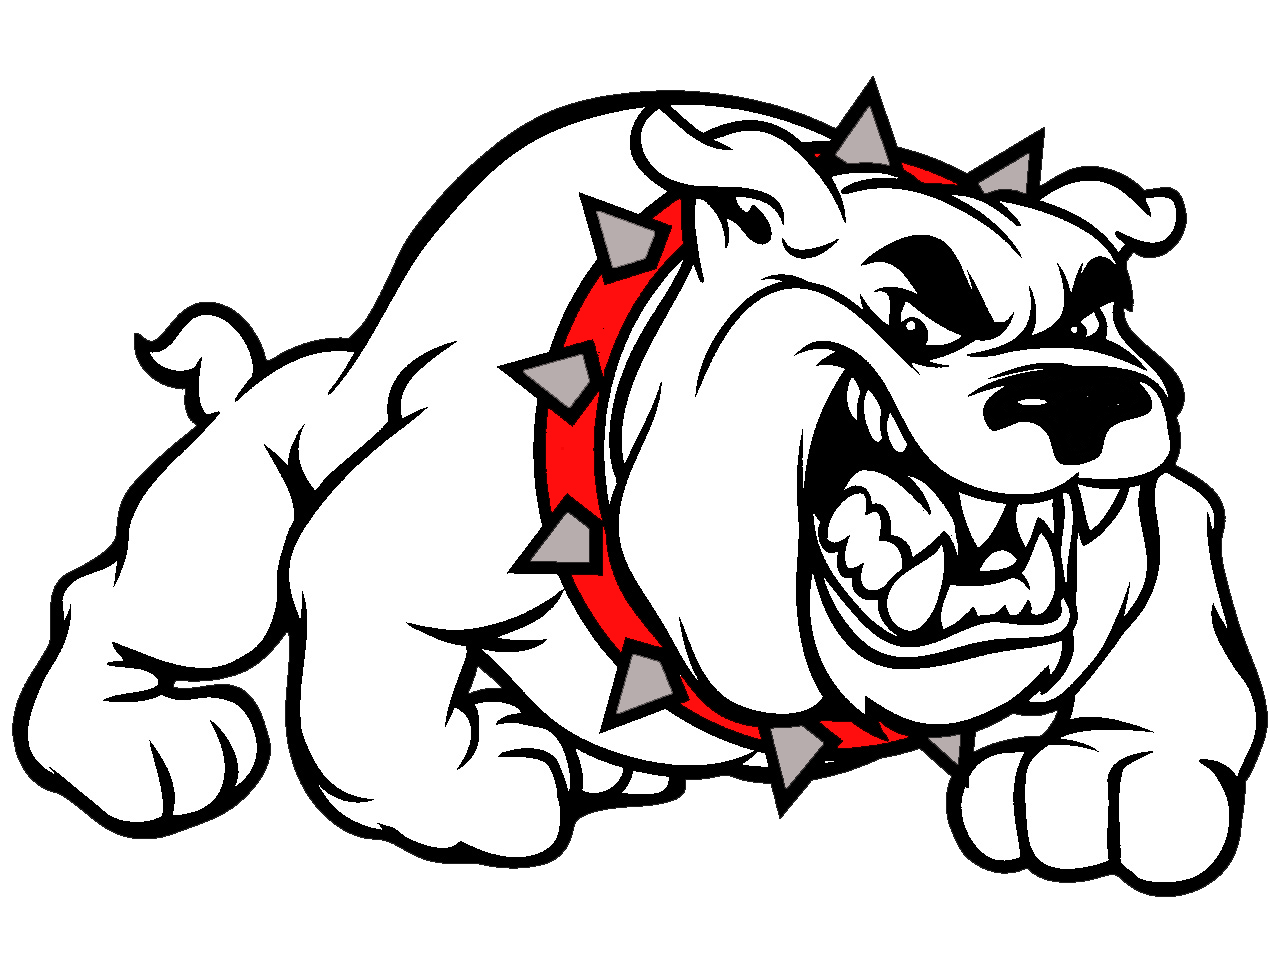 High school basketball clipart transparent library Bulldog Baseball Logo | Clipart Panda - Free Clipart Images transparent library